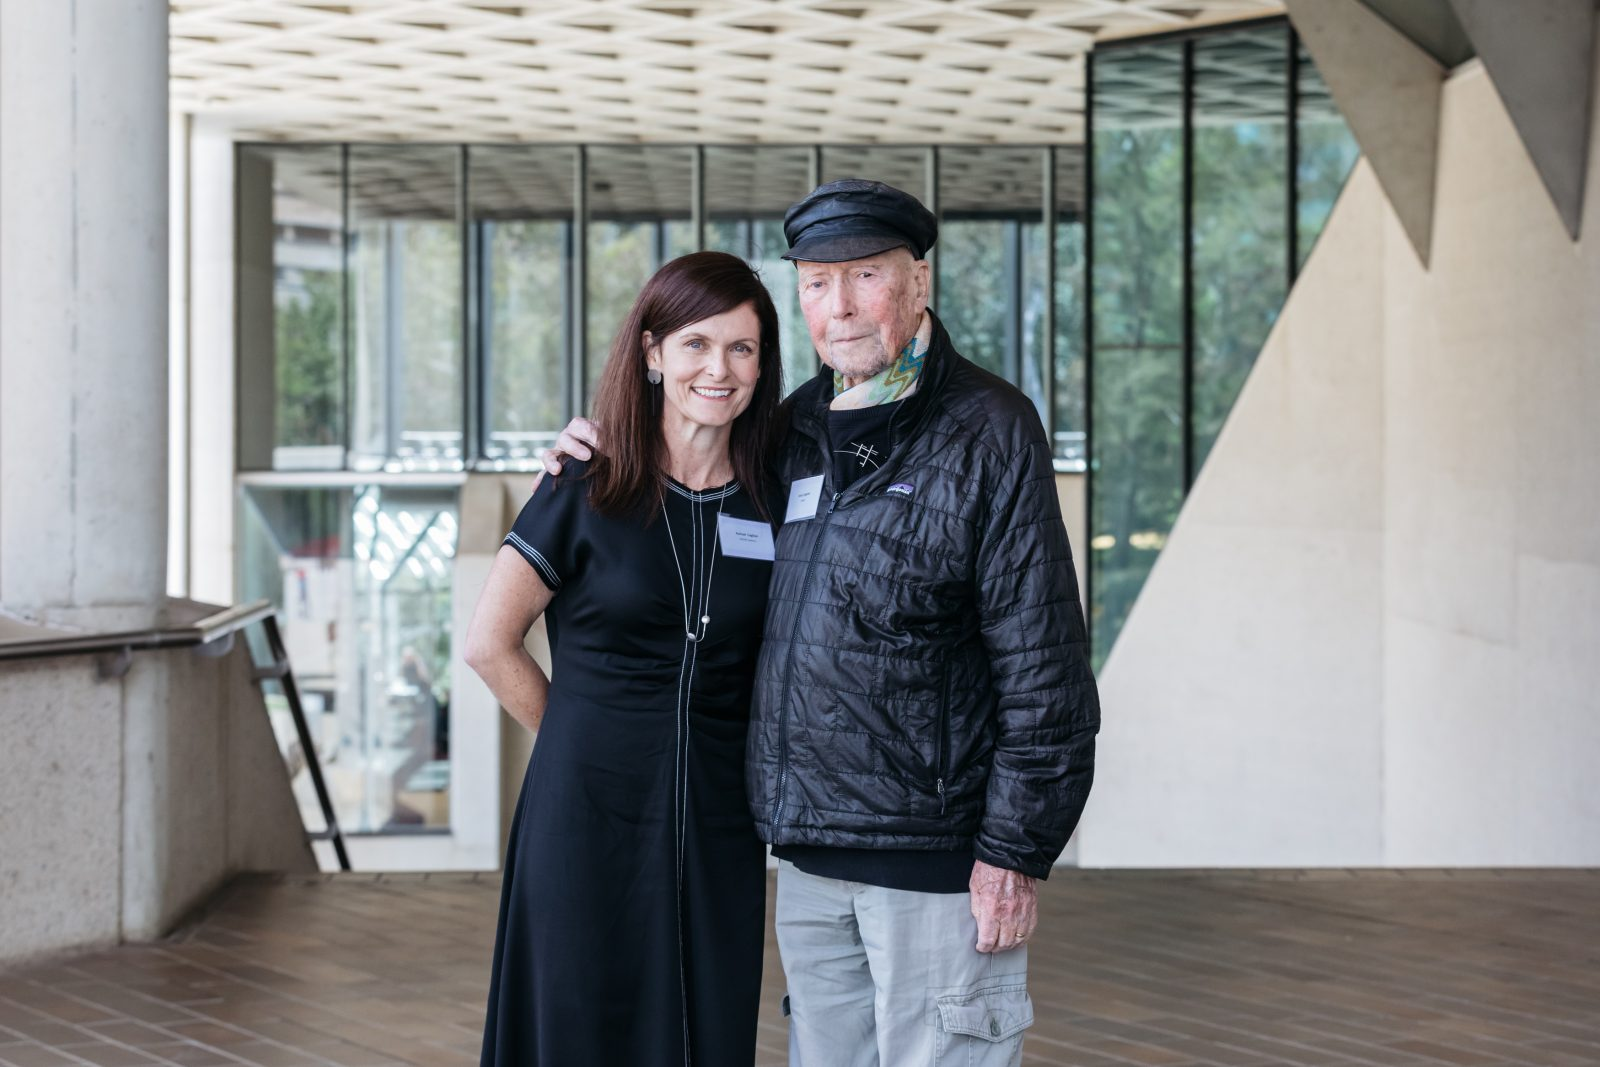 Enrico Taglietti, with CEO Craft ACT and Artistic Director Rachael Coghlan, at the Enrico Taglietti International Symposium, November 2018. Photo: Five Foot Photography